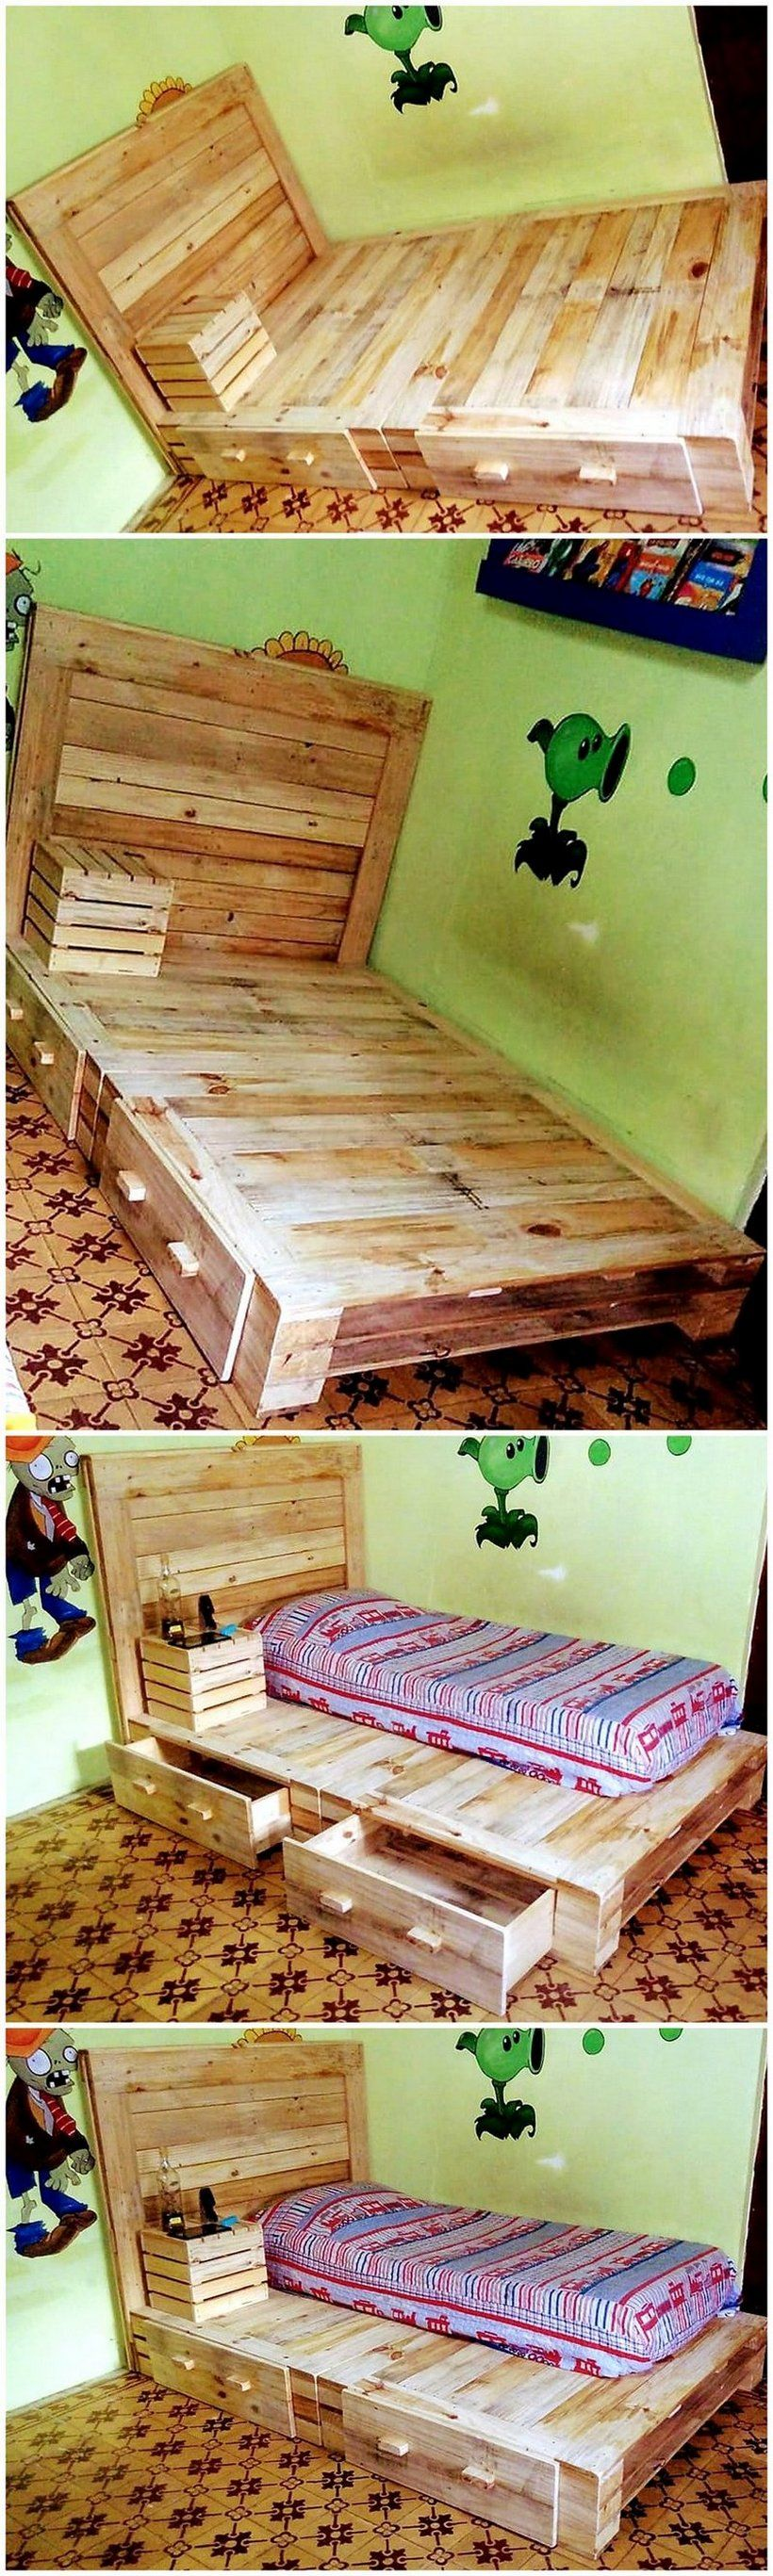 Rustic beds and bedroom furniture ideas pallet rustic furniture